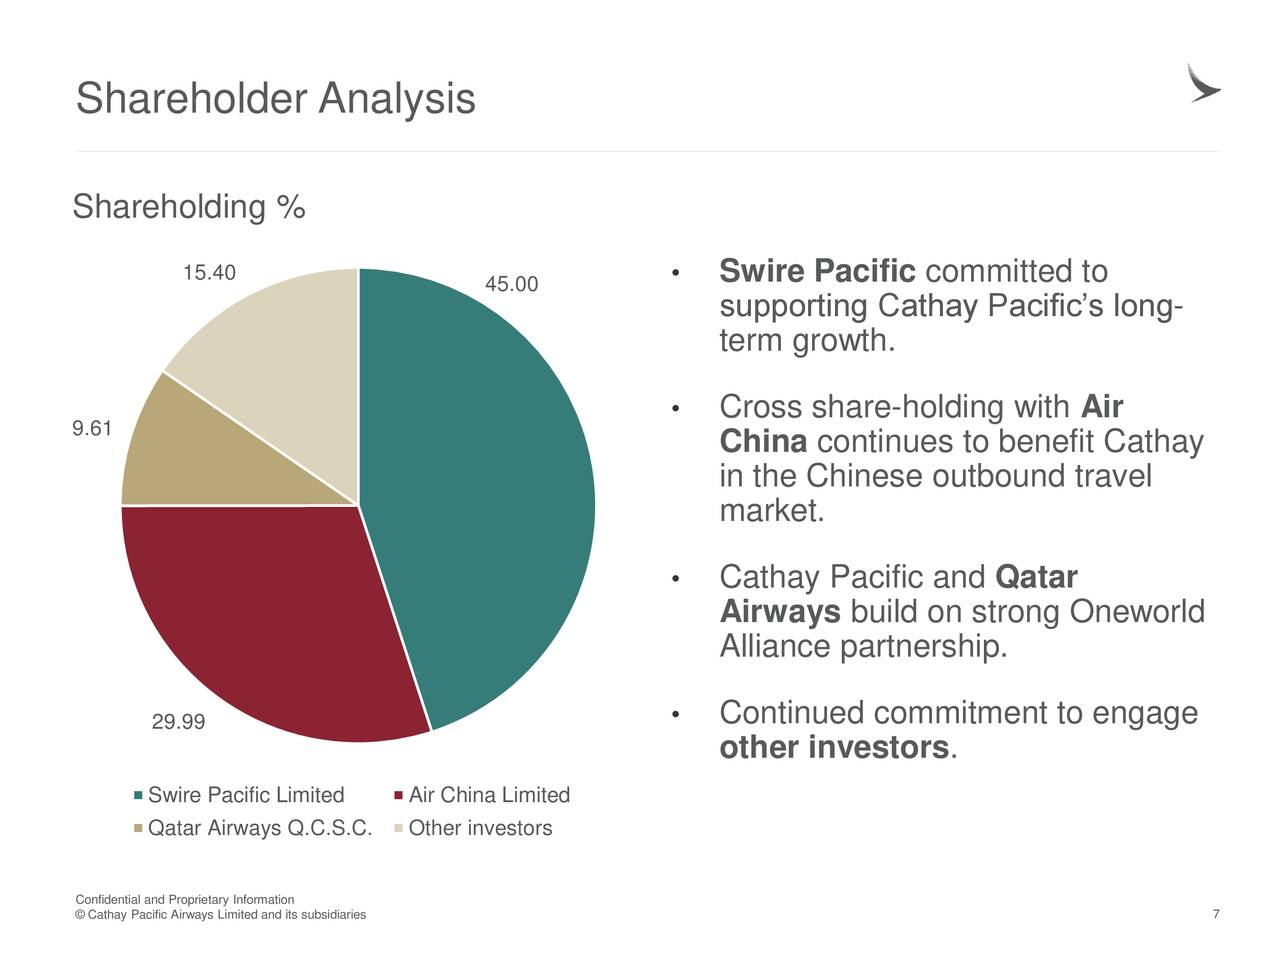 market analysis of cathay pacific airlines Cathay pacific airways limited and its subsidiaries  shareholder analysis   market • cathay pacific and qatar airways build on strong.